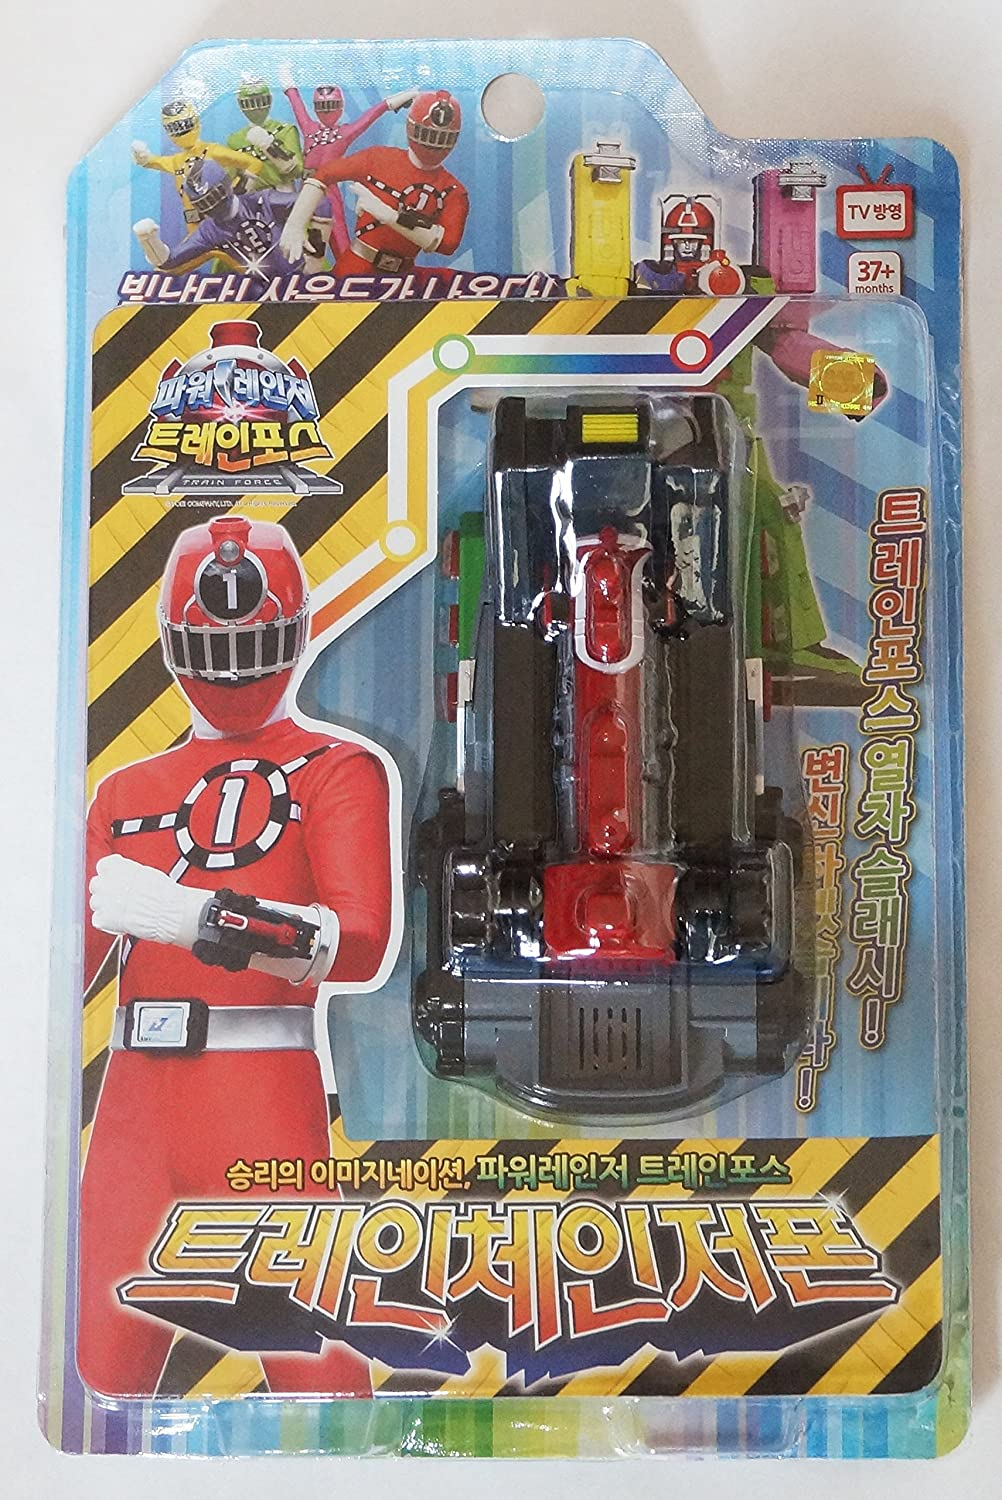 Henshin Bracelet Tokkyu Changer Light /& Sound DAEWON Ressha Sentai ToQger Power Rangers Train Force